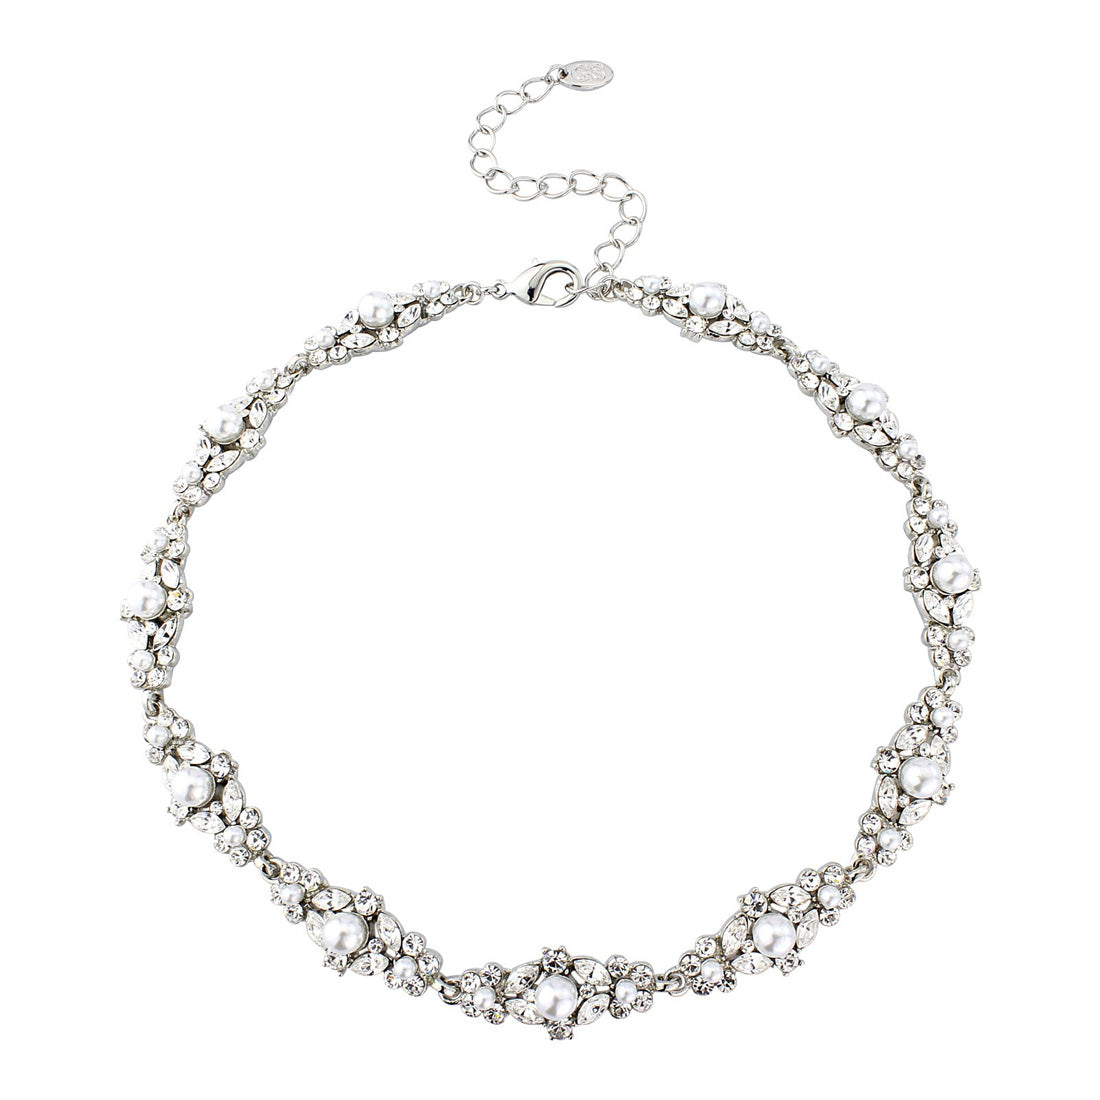 Pearls of Splendour Wedding Collar Necklace